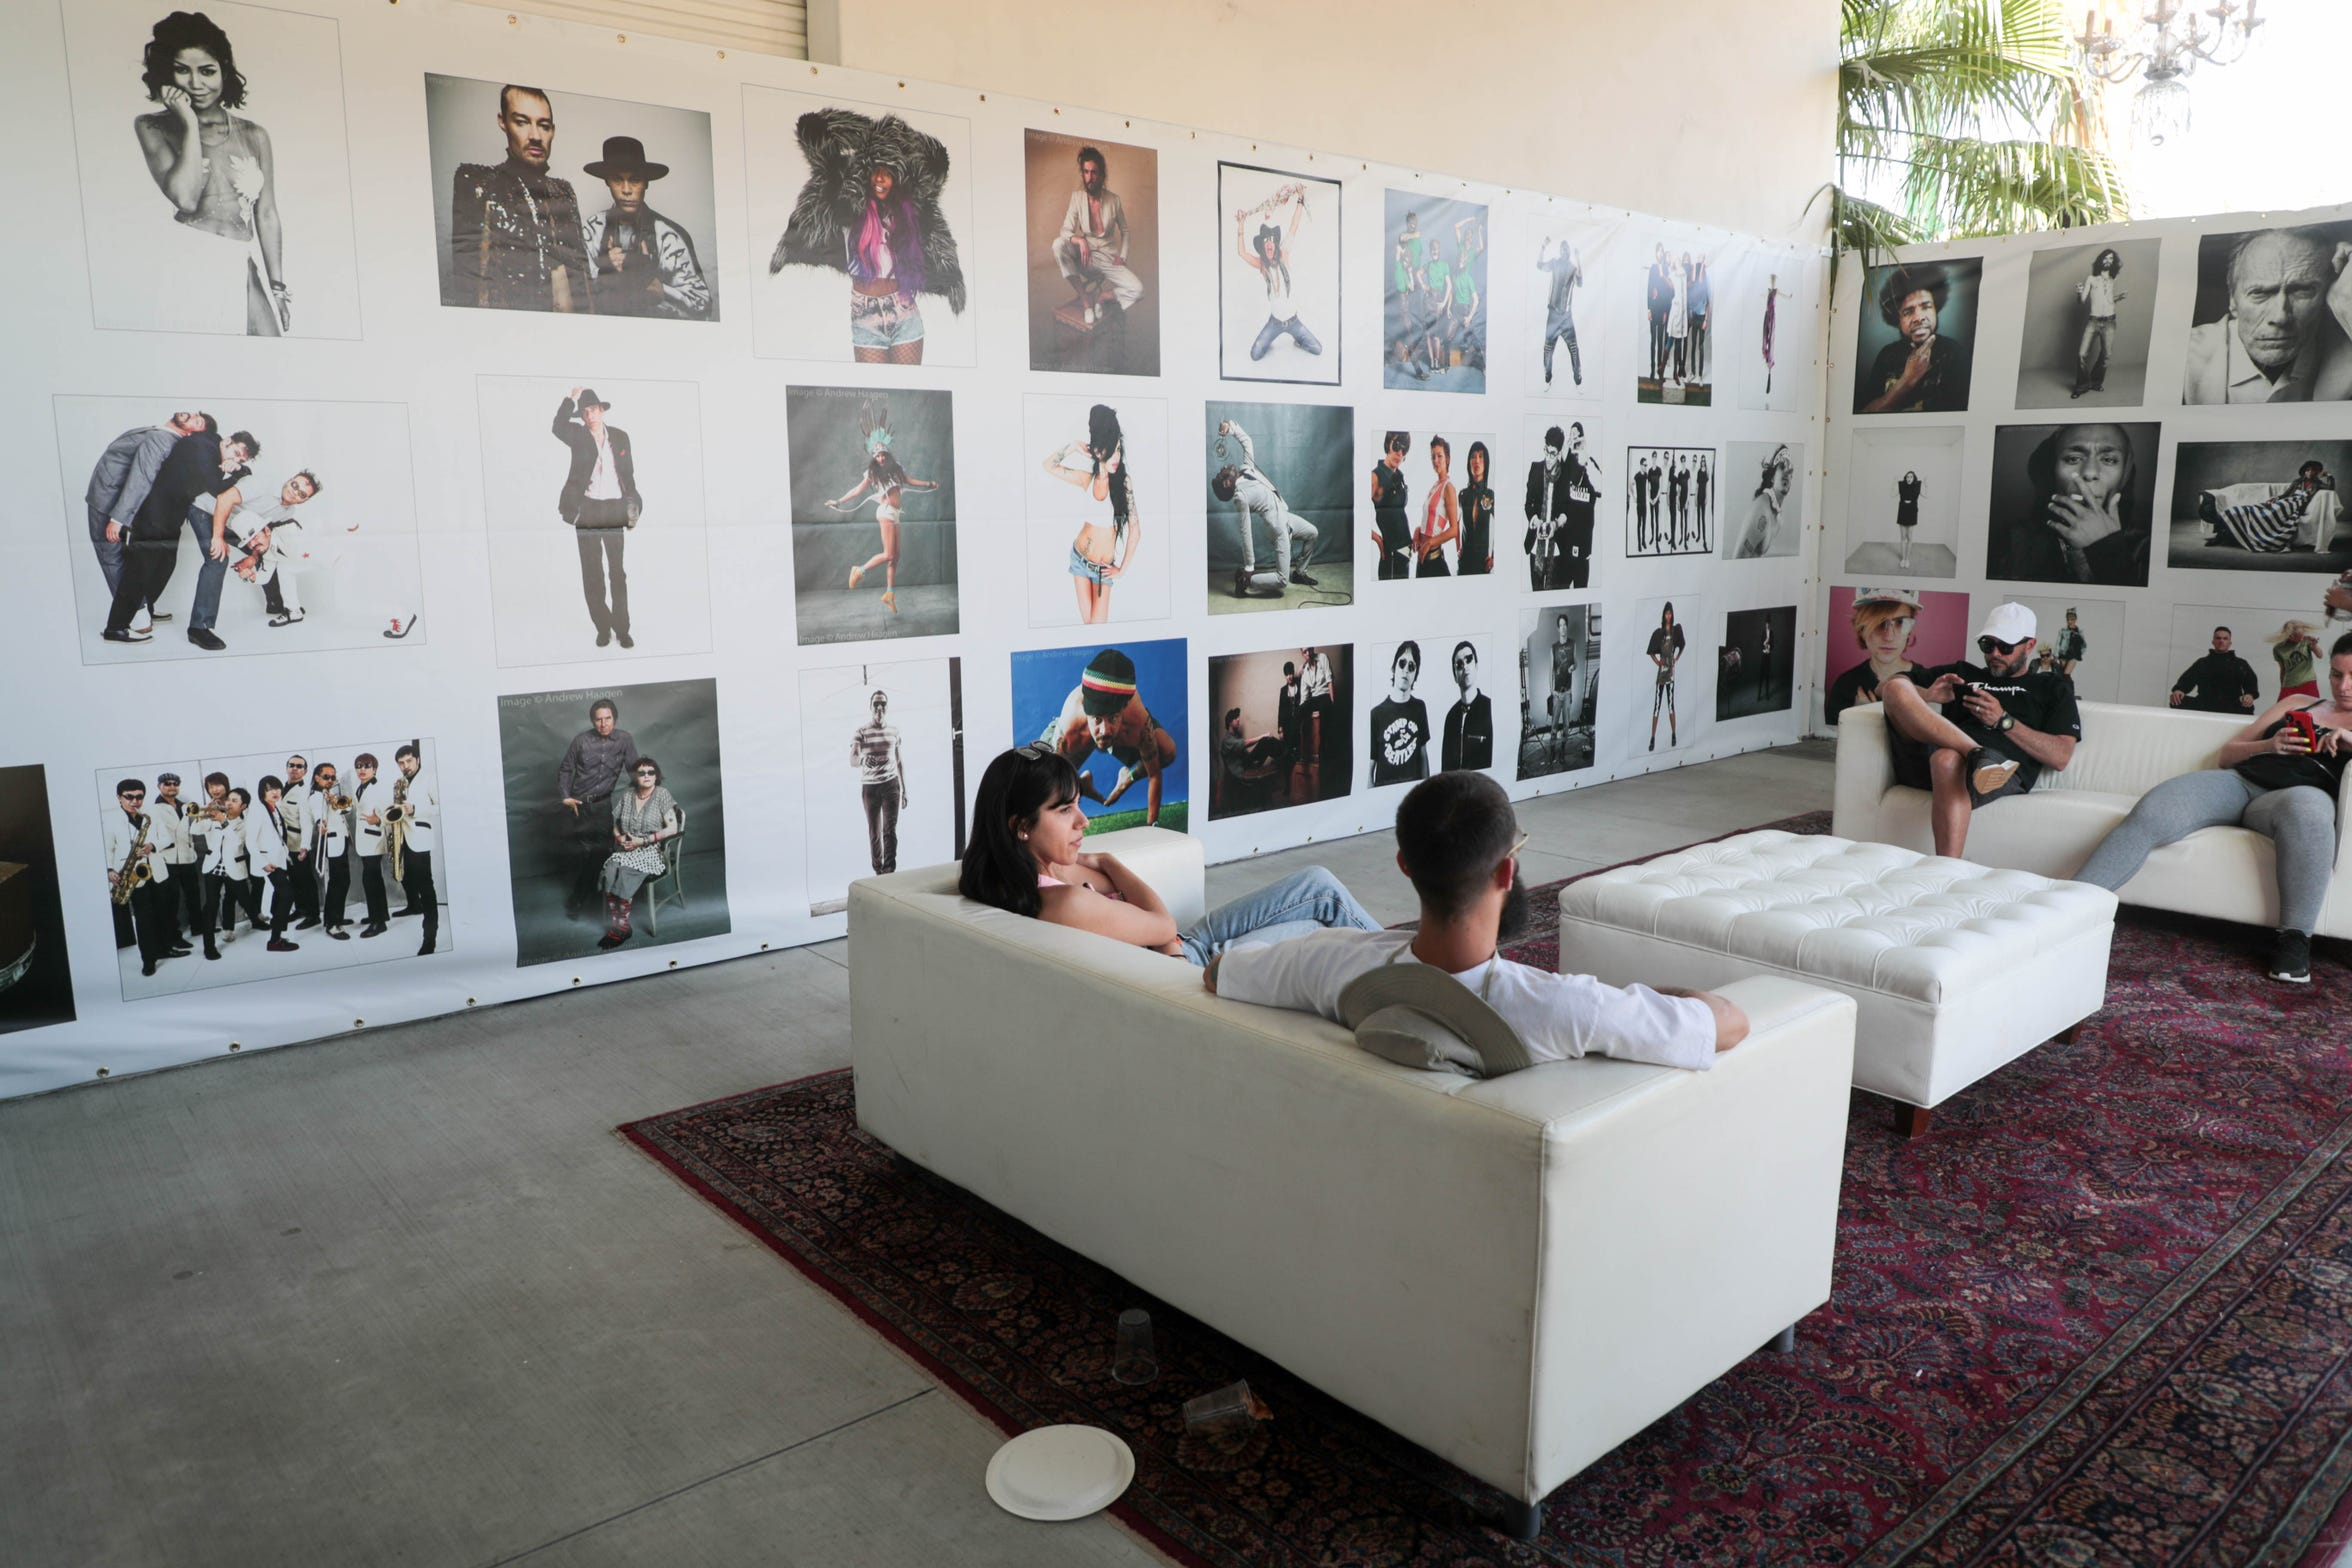 The Artist Photo Gallery of Andrew Haagen sits on the Empire Polo Club on Sunday, April 15, 2019. Haagen has been photographing artists in his photo tent at the Coachella Valley Music and Arts Festival in Indio, Calif. since the inception of the festival.